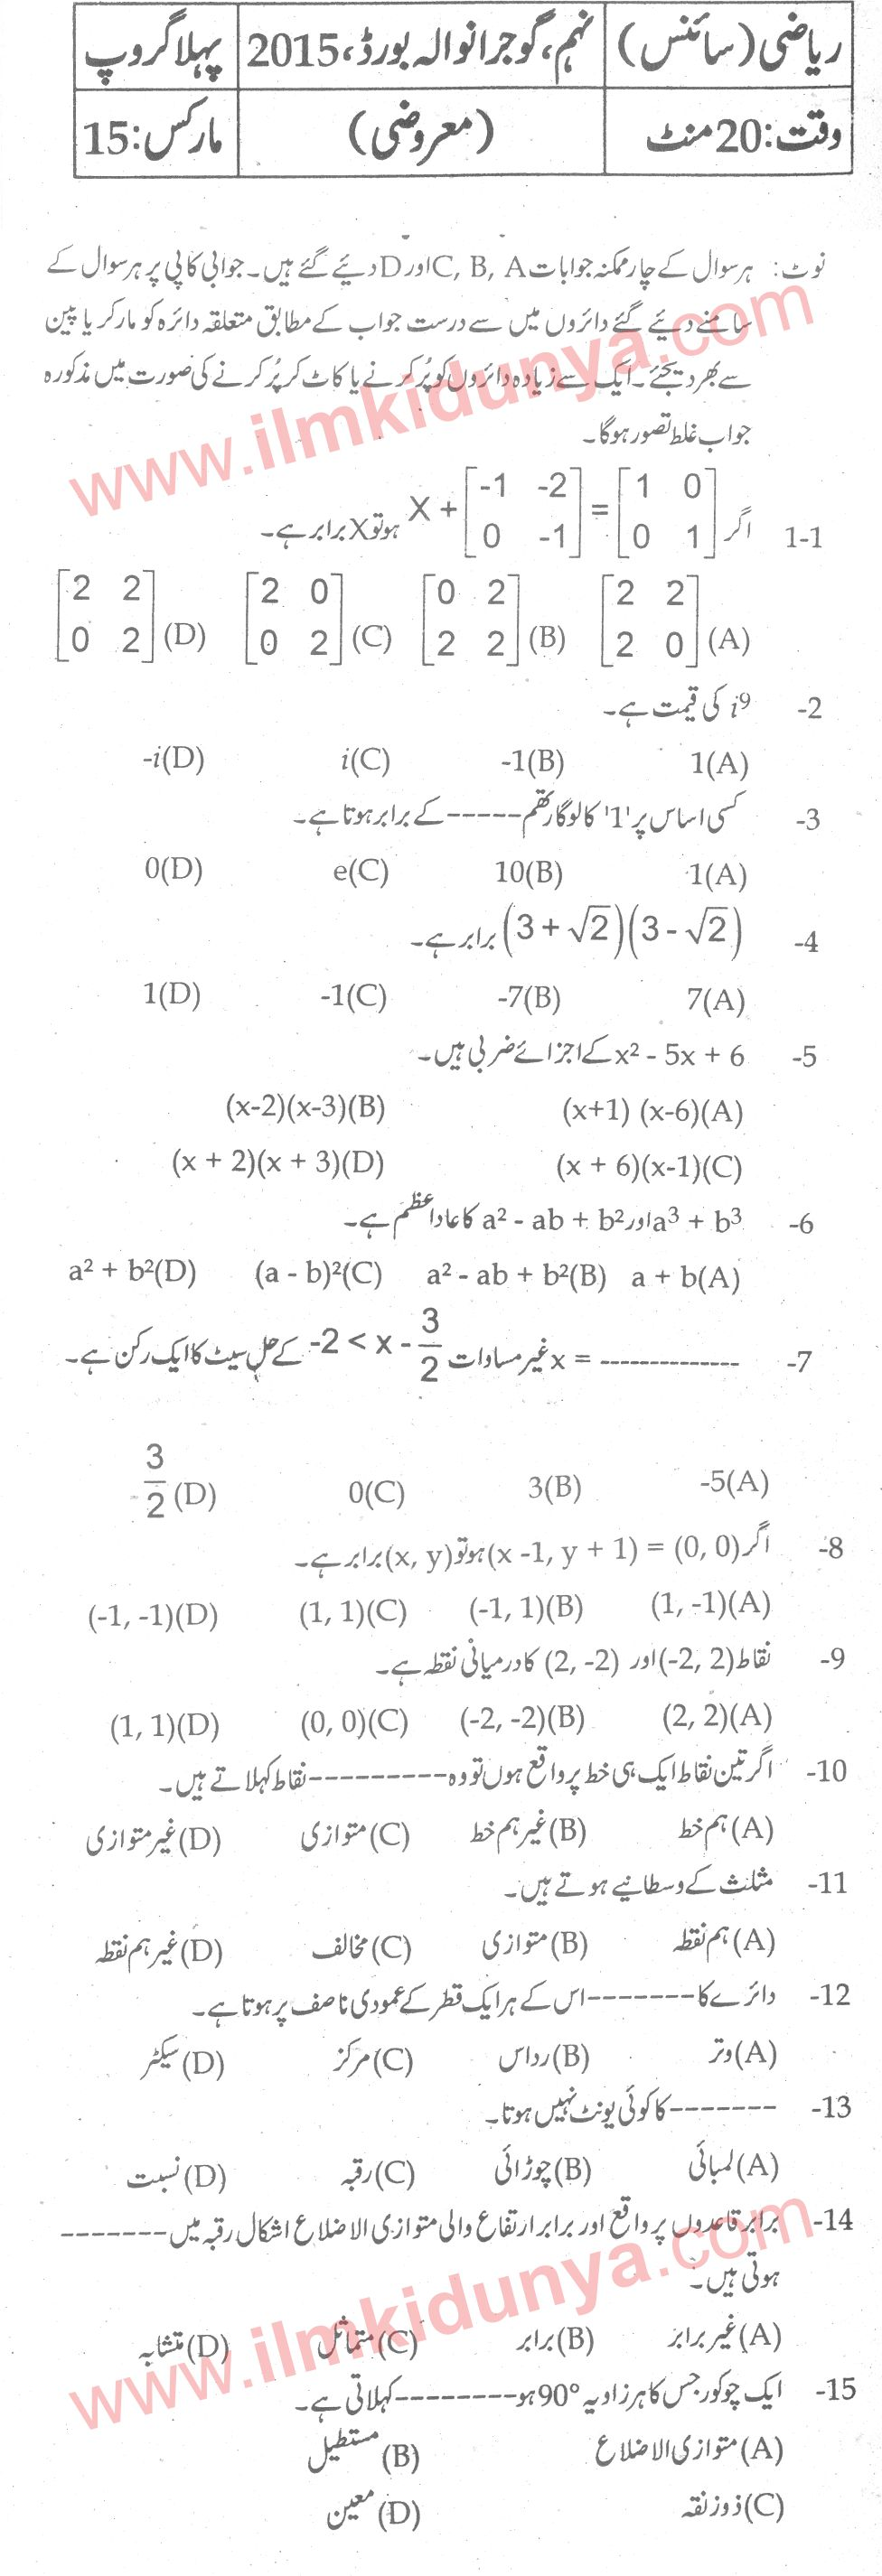 Past Papers 2015 Gujranwala Board 9th Class Mathematics Objective